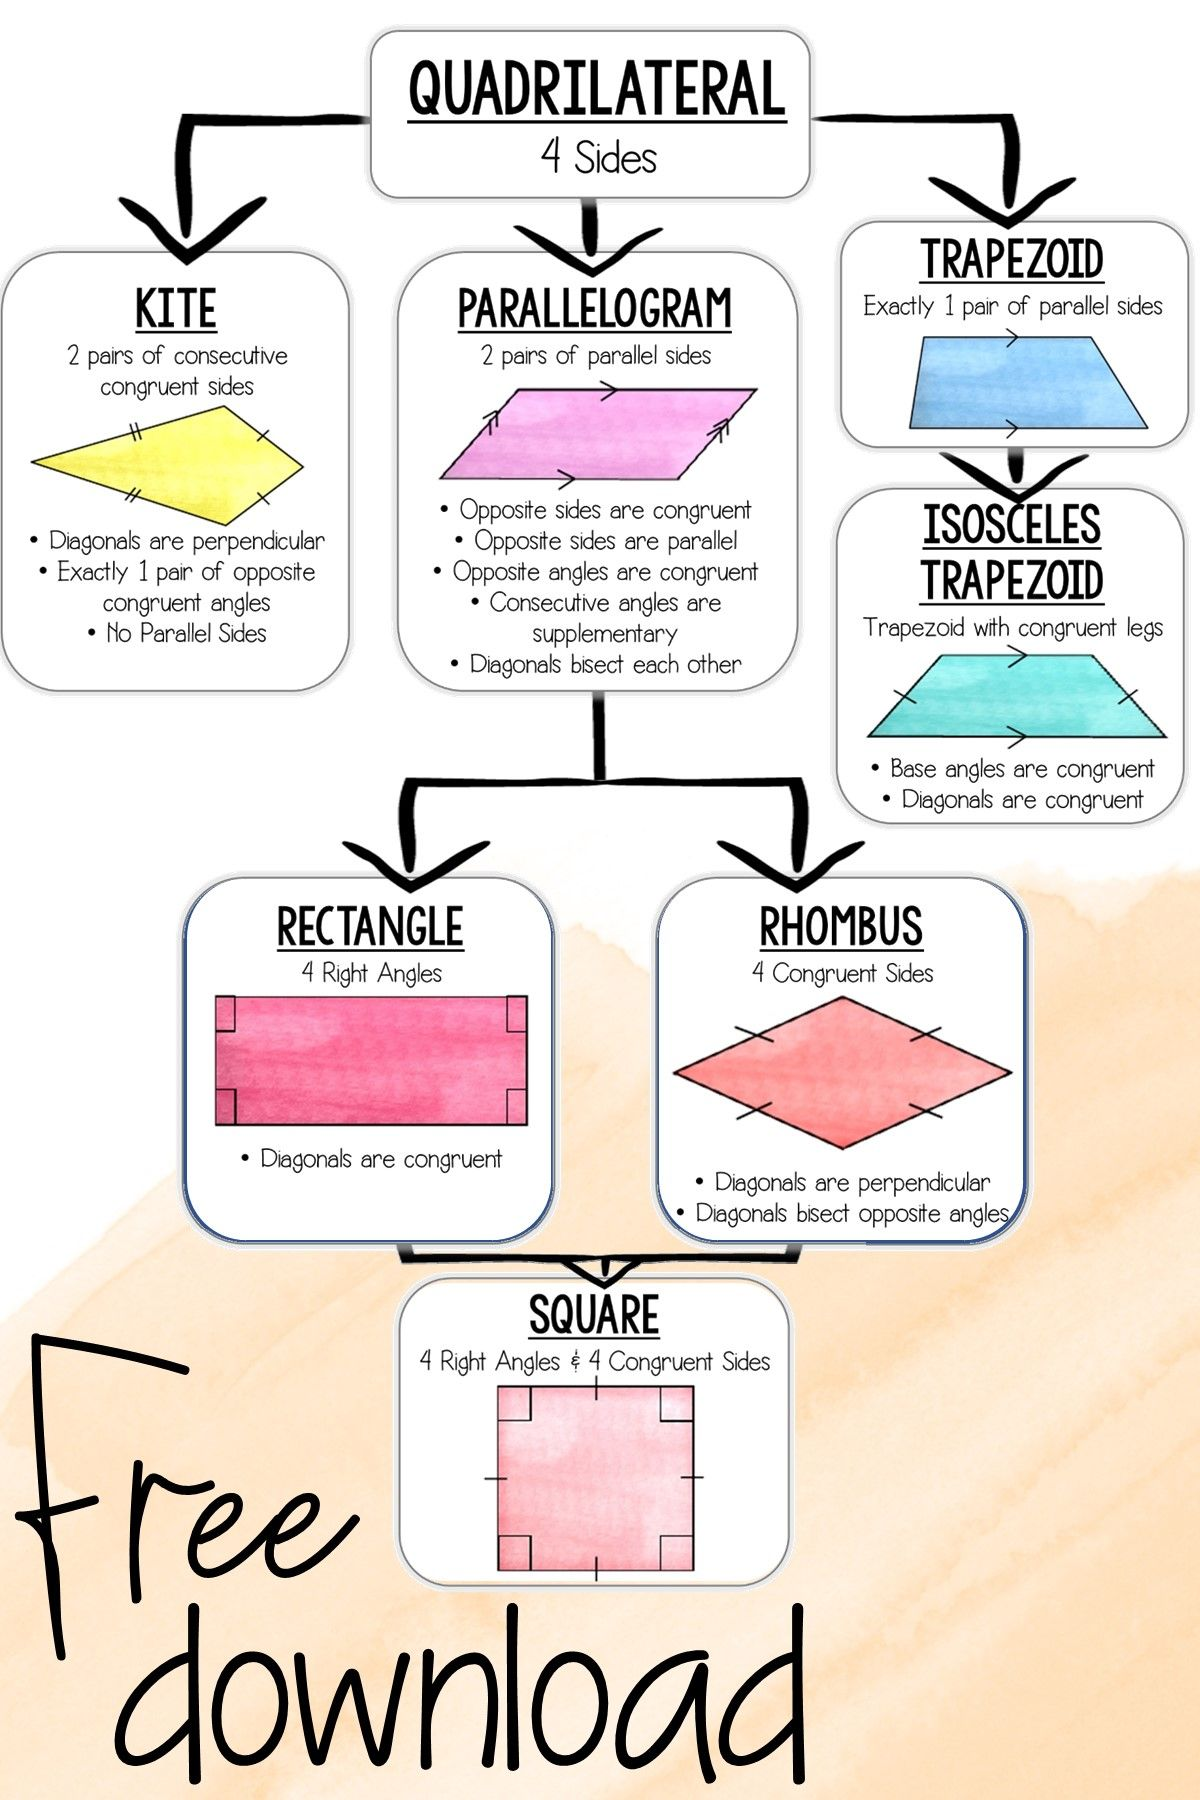 Quadrilateral Theorems and Classifying Quadrilaterals Anchor Chart / Poster    Quadrilaterals anchor chart [ 1800 x 1200 Pixel ]